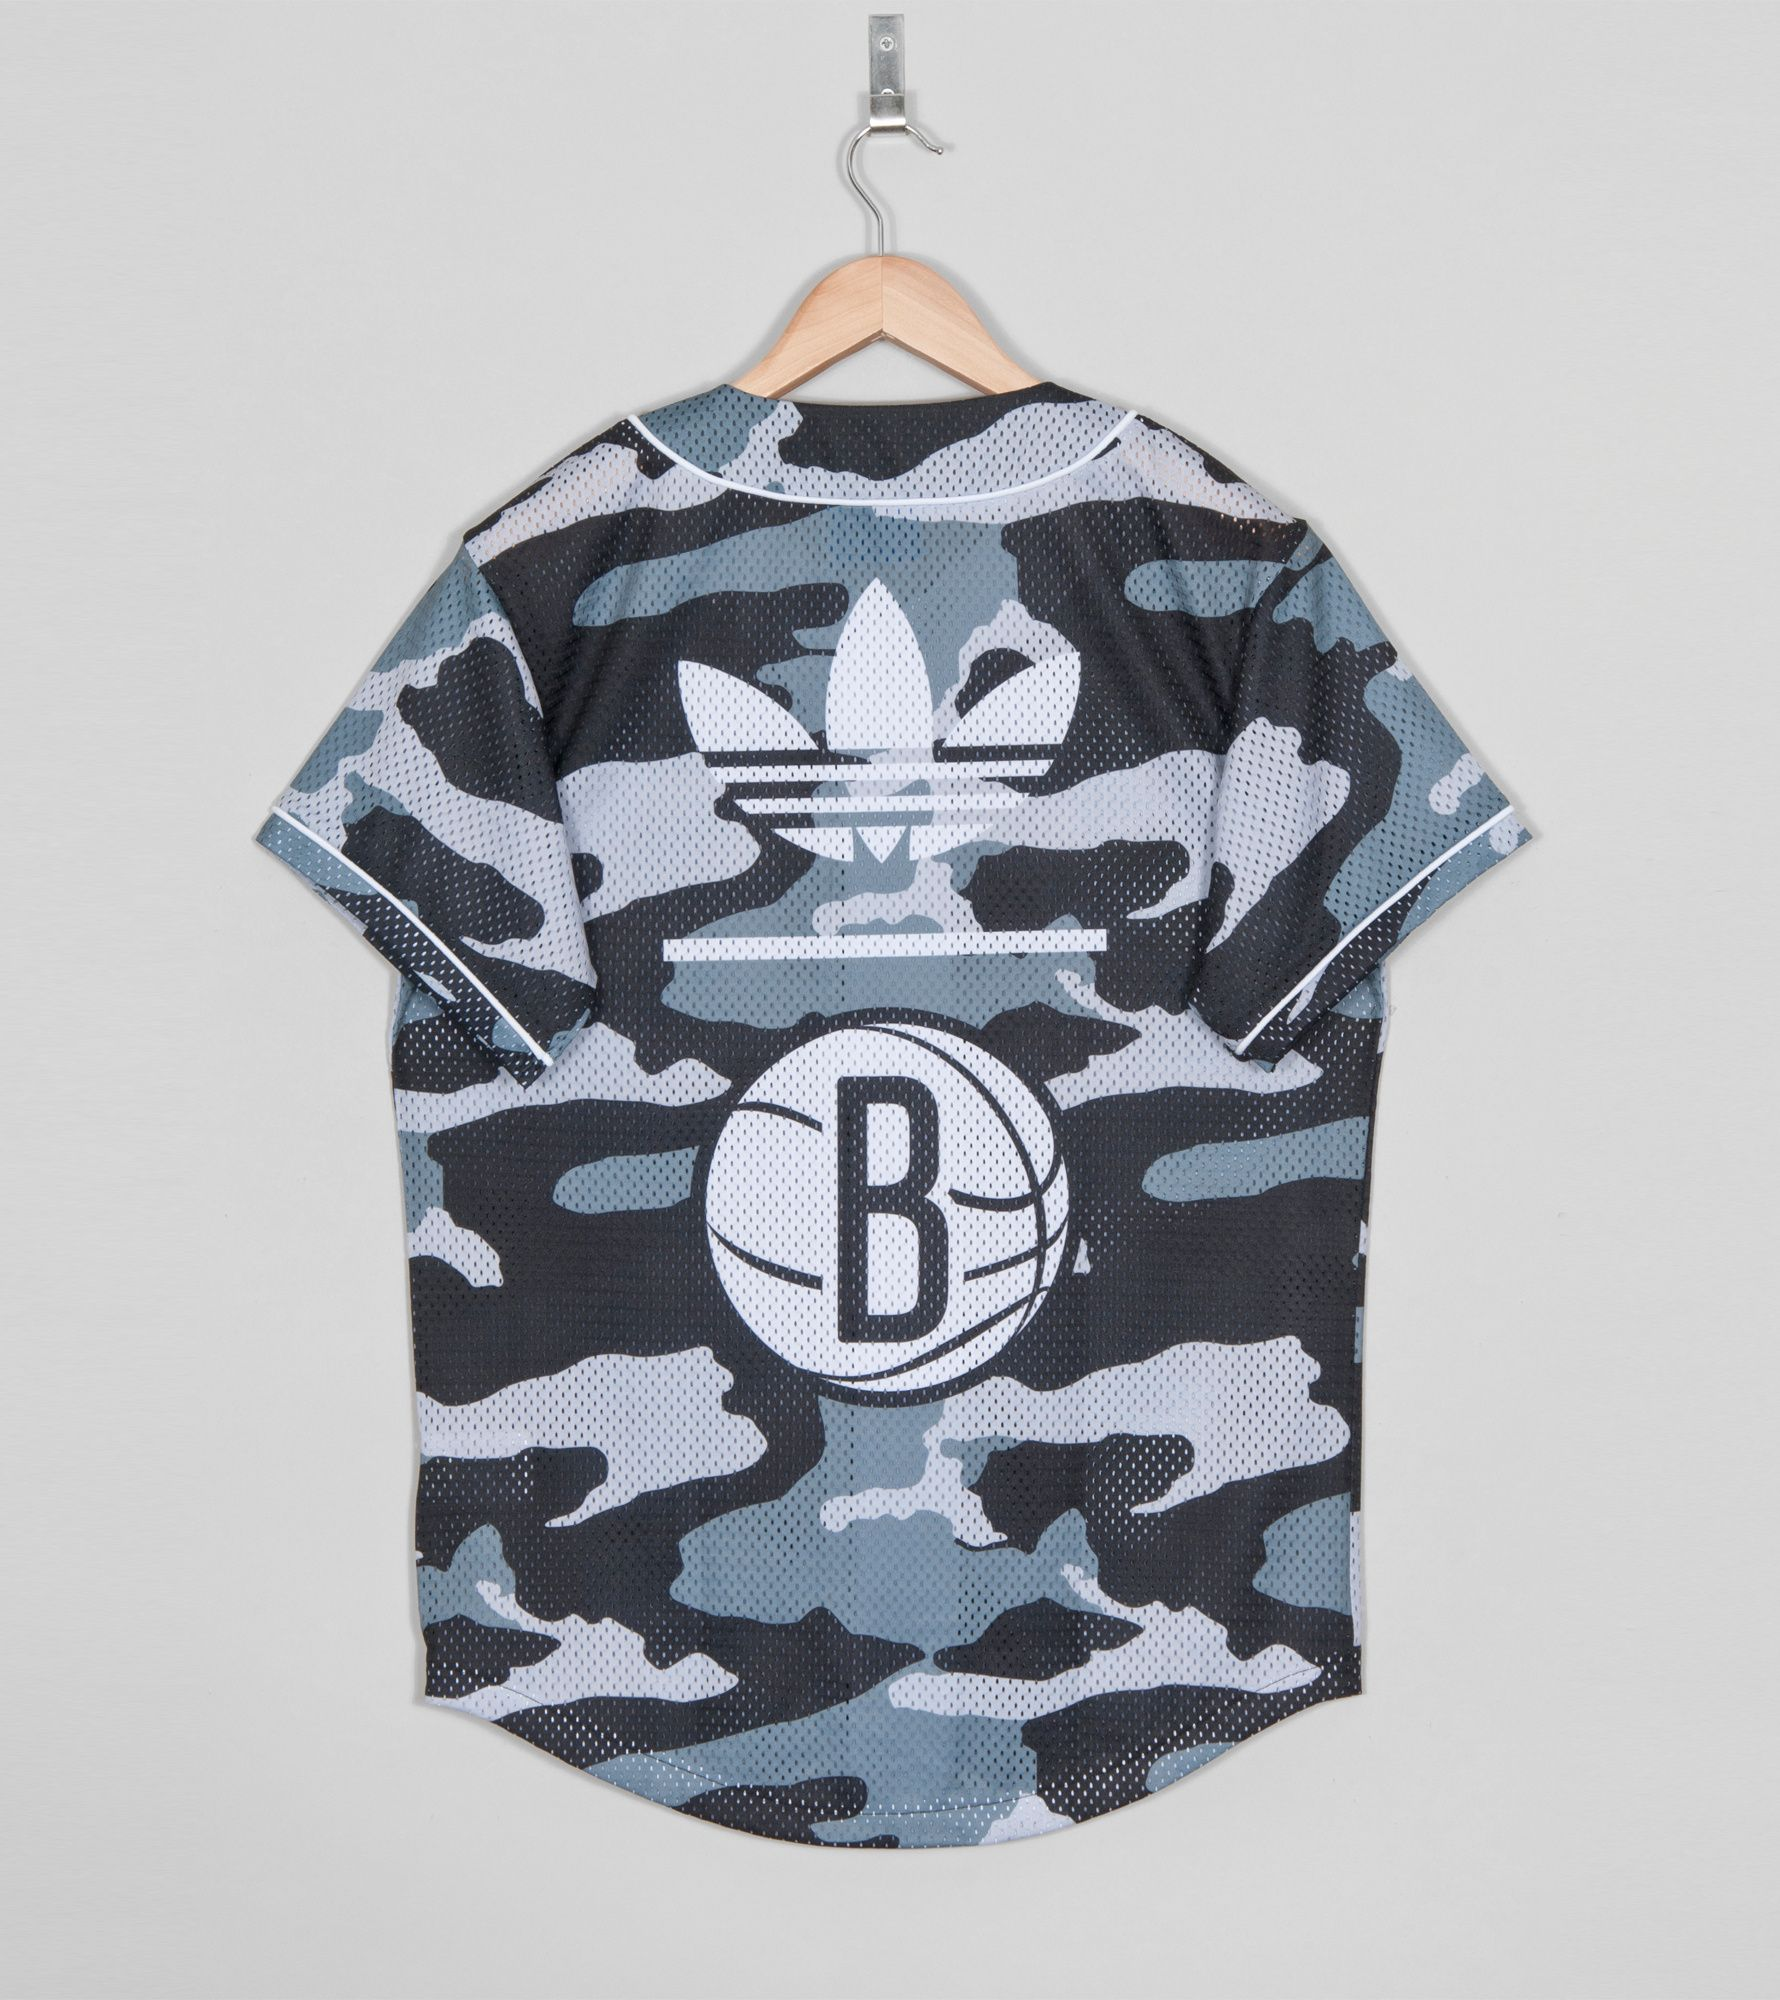 adidas Originals Brooklyn Nets Baseball Shirt